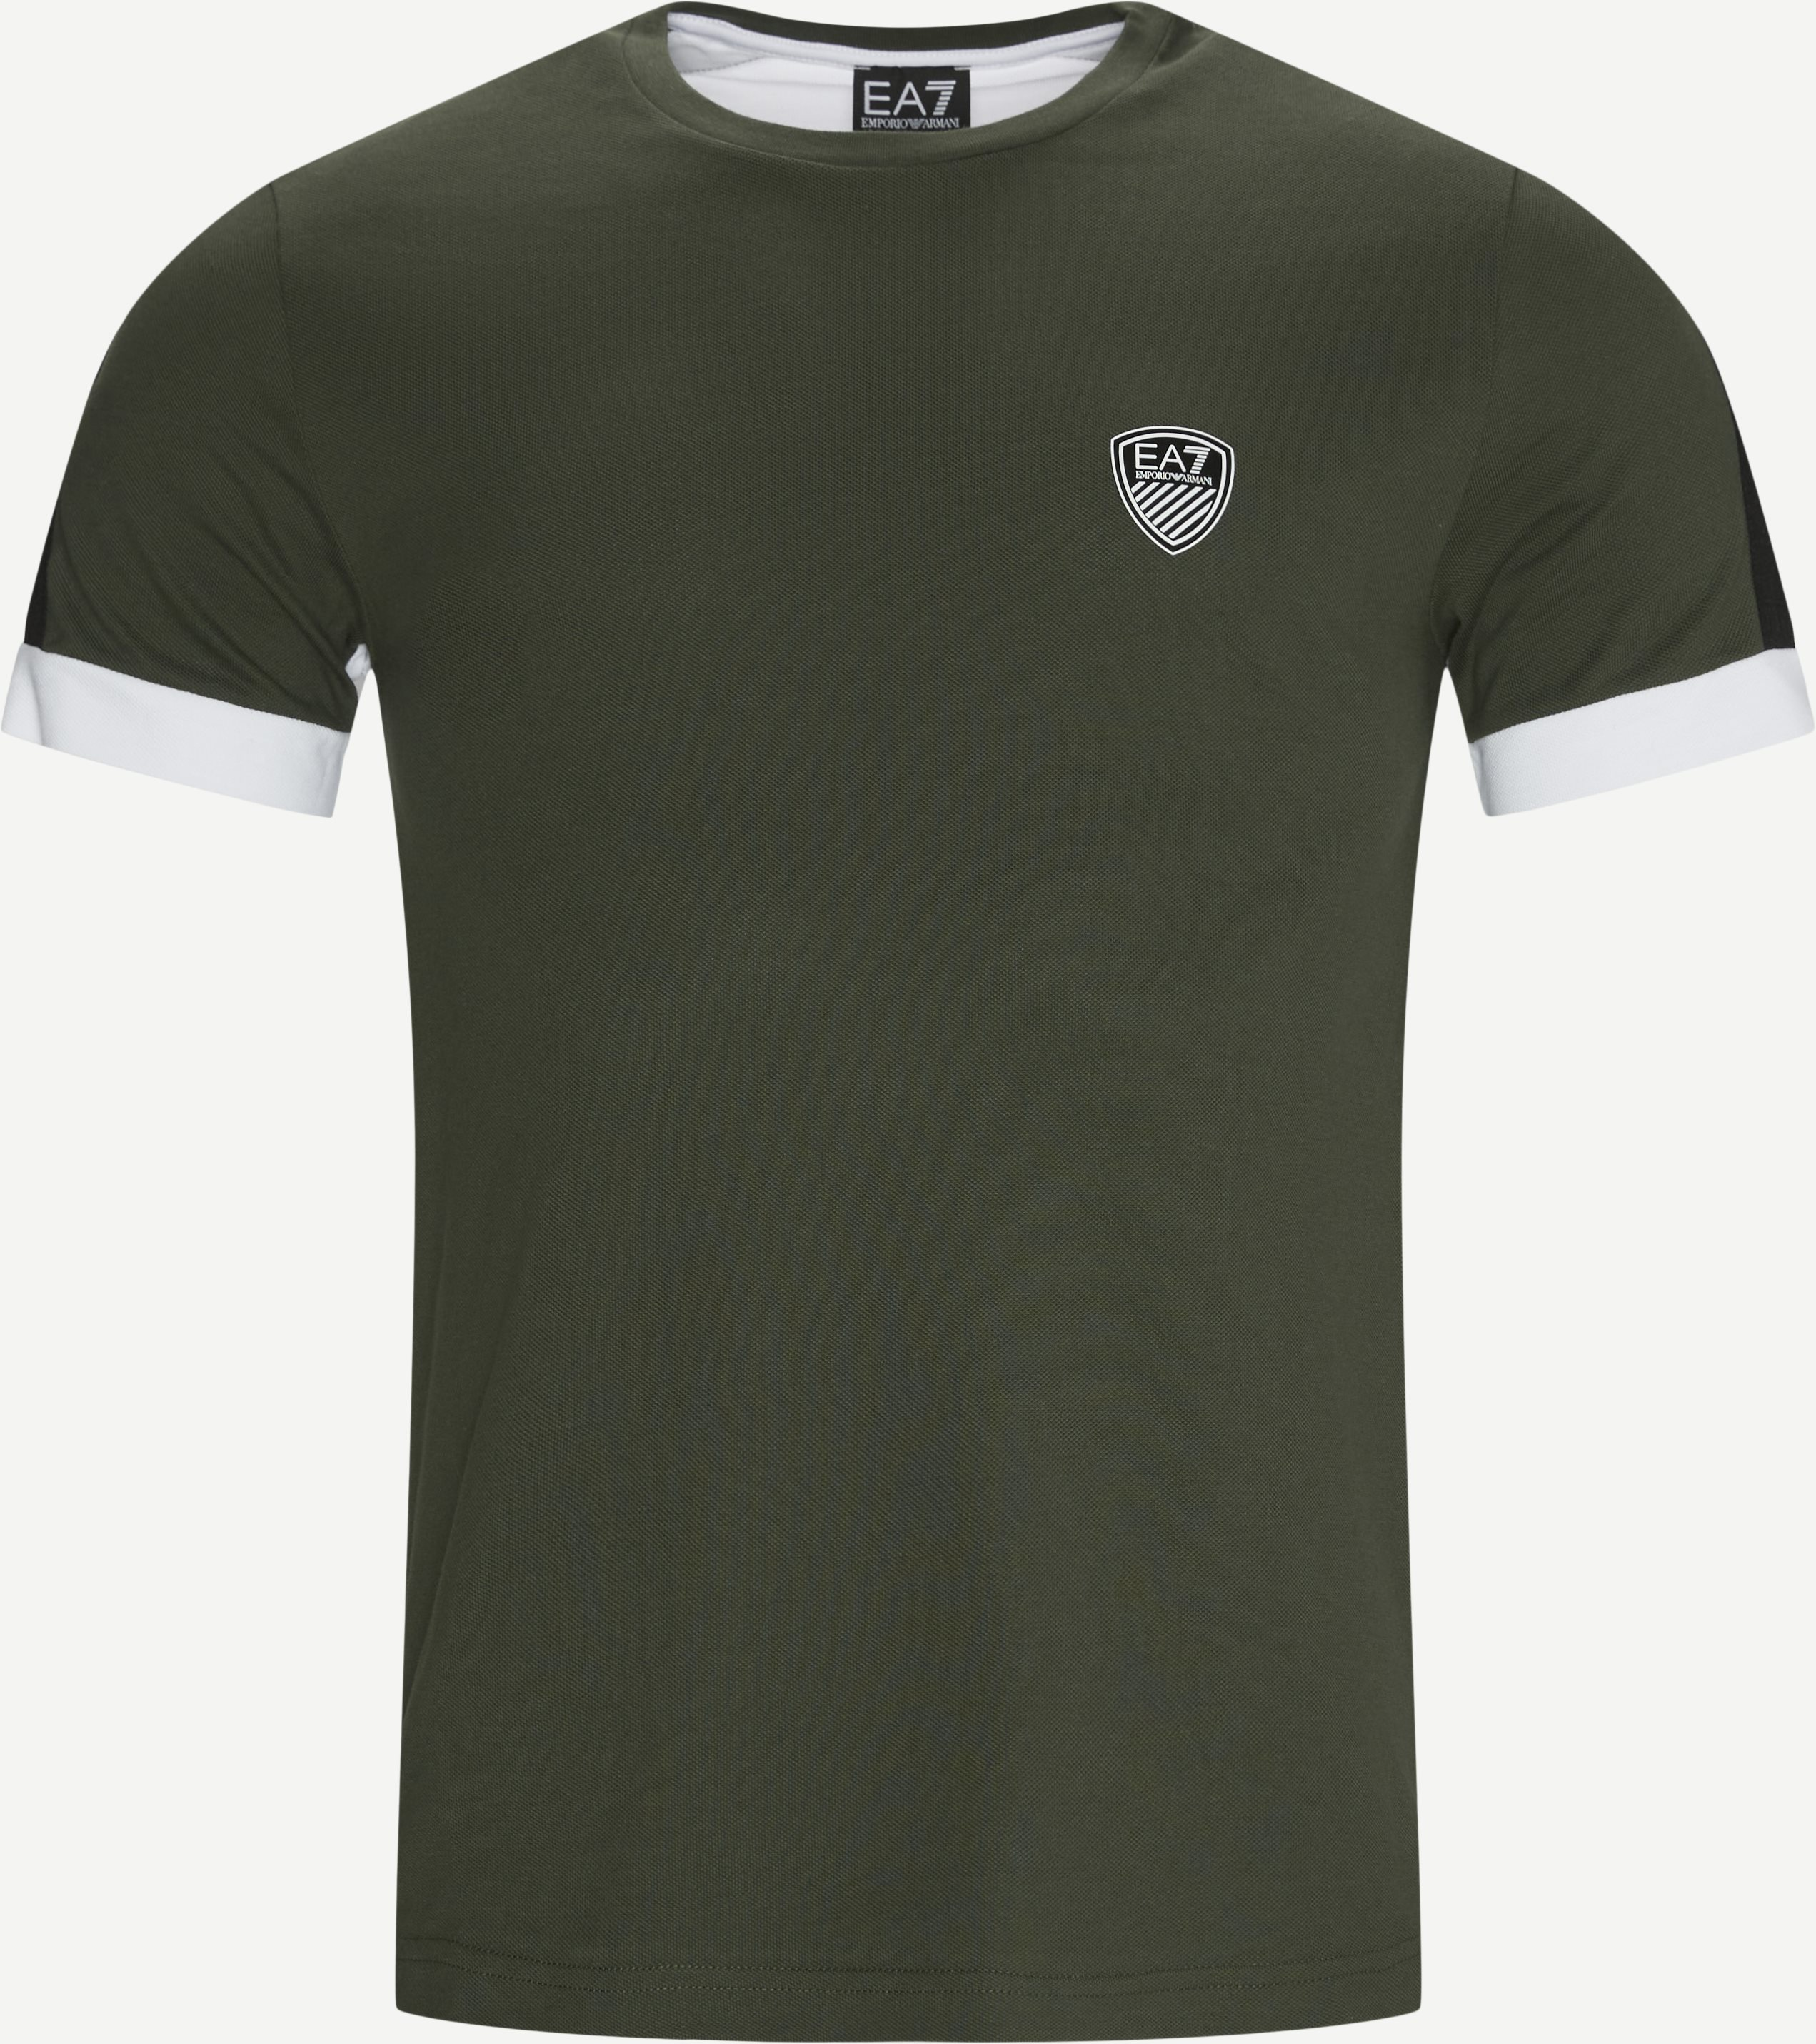 Pj4mz Logo T-shirt - T-shirts - Regular - Army